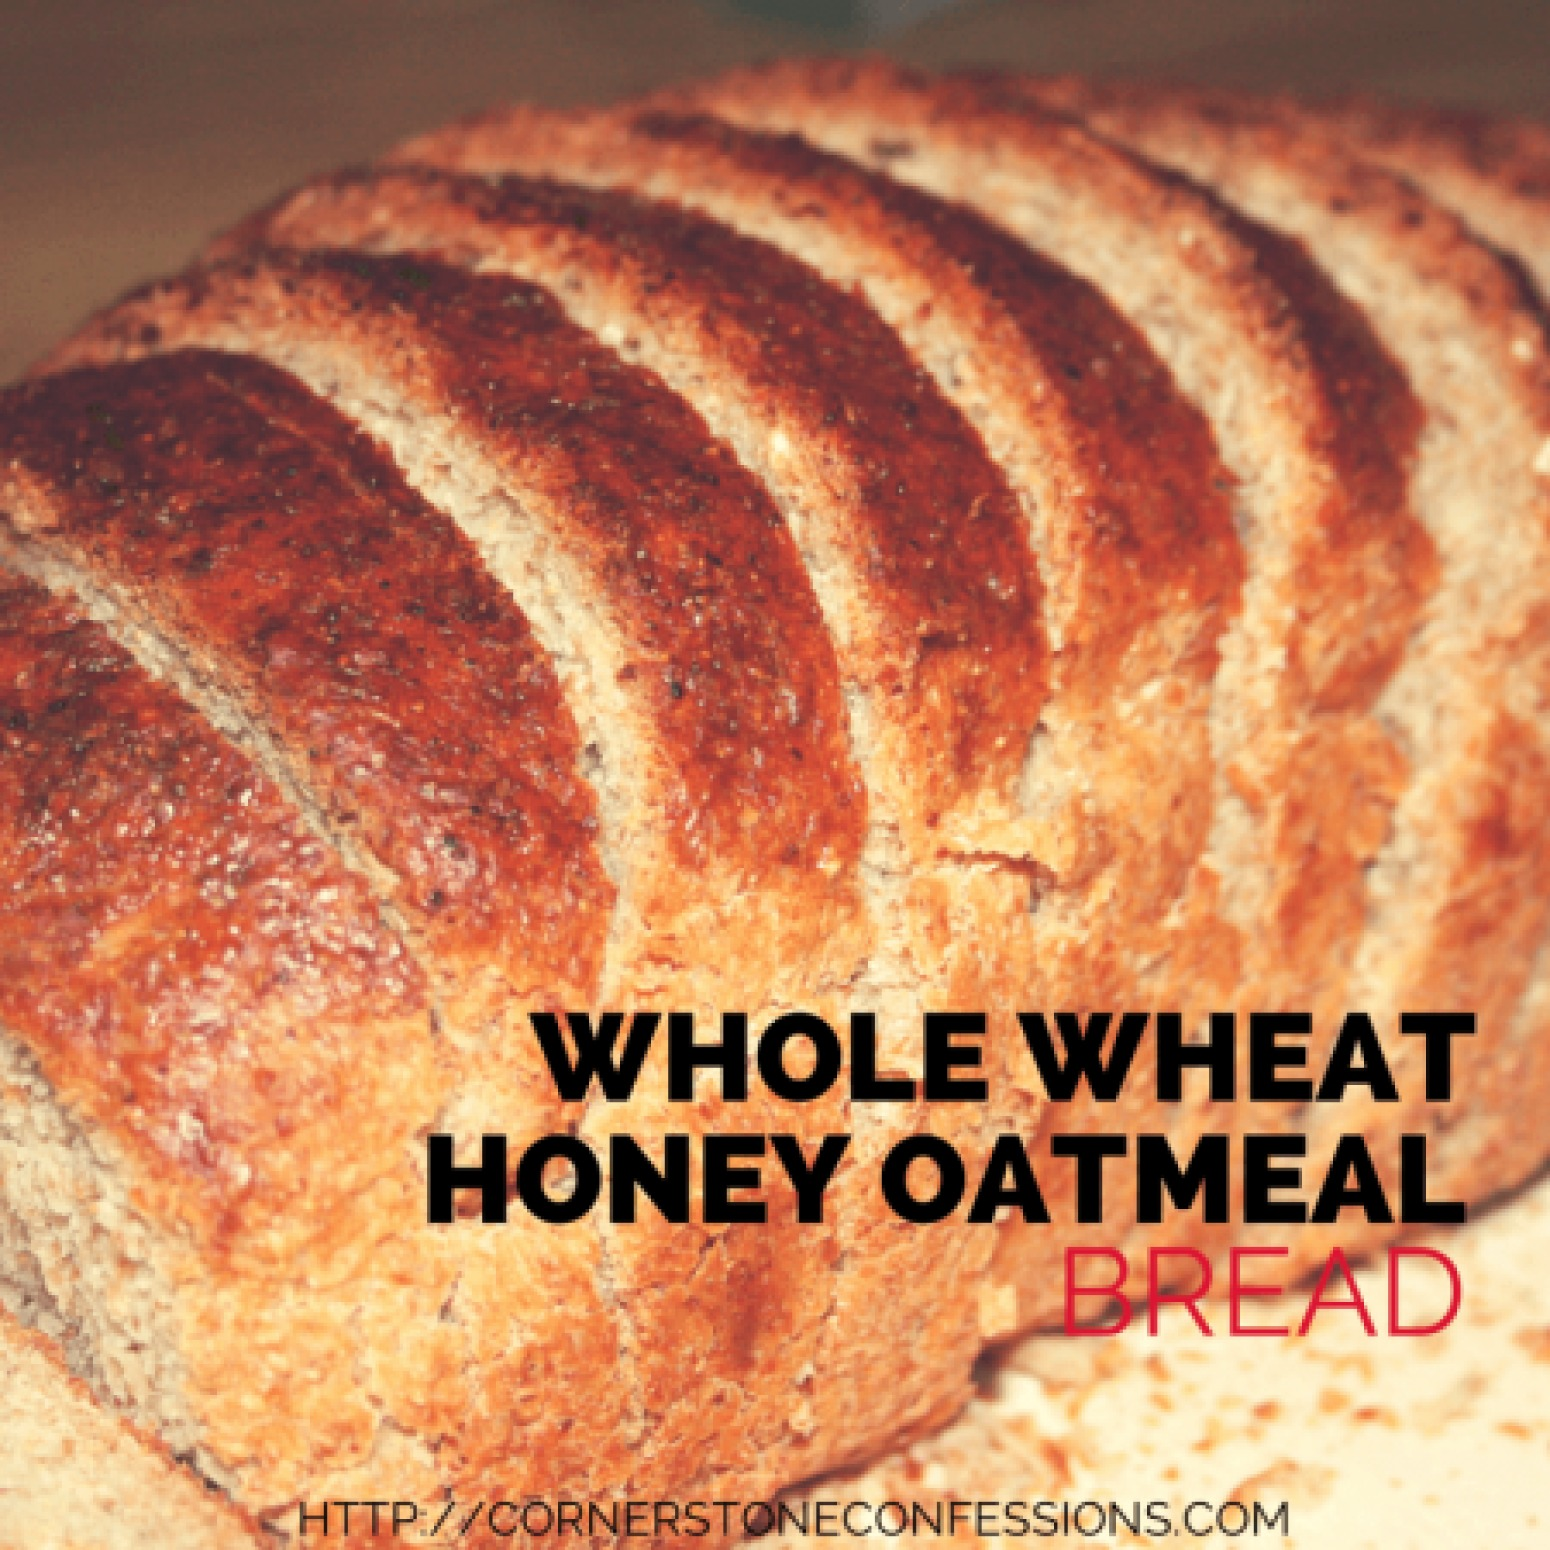 Whole Wheat Honey Oatmeal Bread Recipe 4 | Just A Pinch Recipes